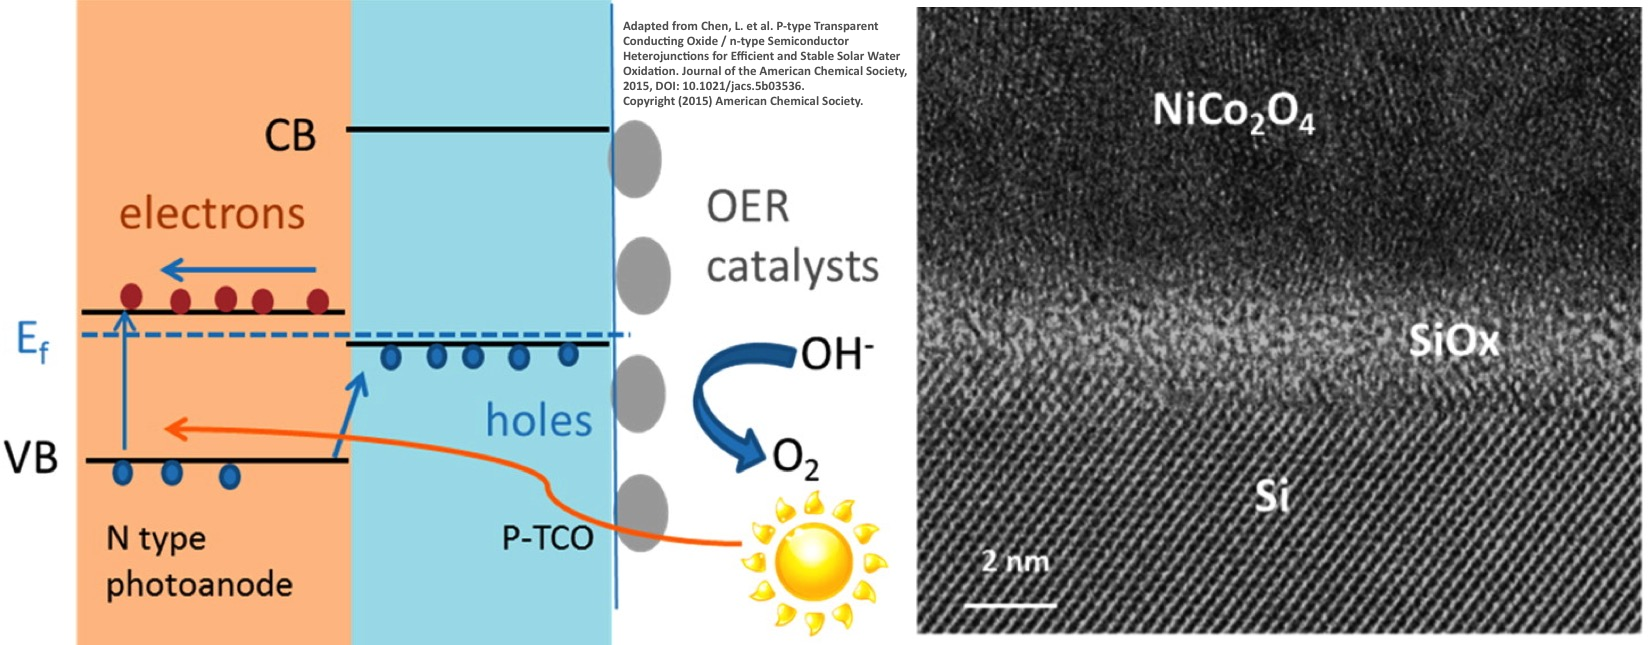 Reprinted with permission from Loiudice, A.  et  al.  Bandgap  Tunability in Sb-Alloyed BiVO  4  Quaternary Oxides as Visible Light Absorbers for Solar Fuel Applications. Advanced Materials,   DOI: 10.1002/ adma  . 201502361   (2015).  Copyright (2015) WILEY.